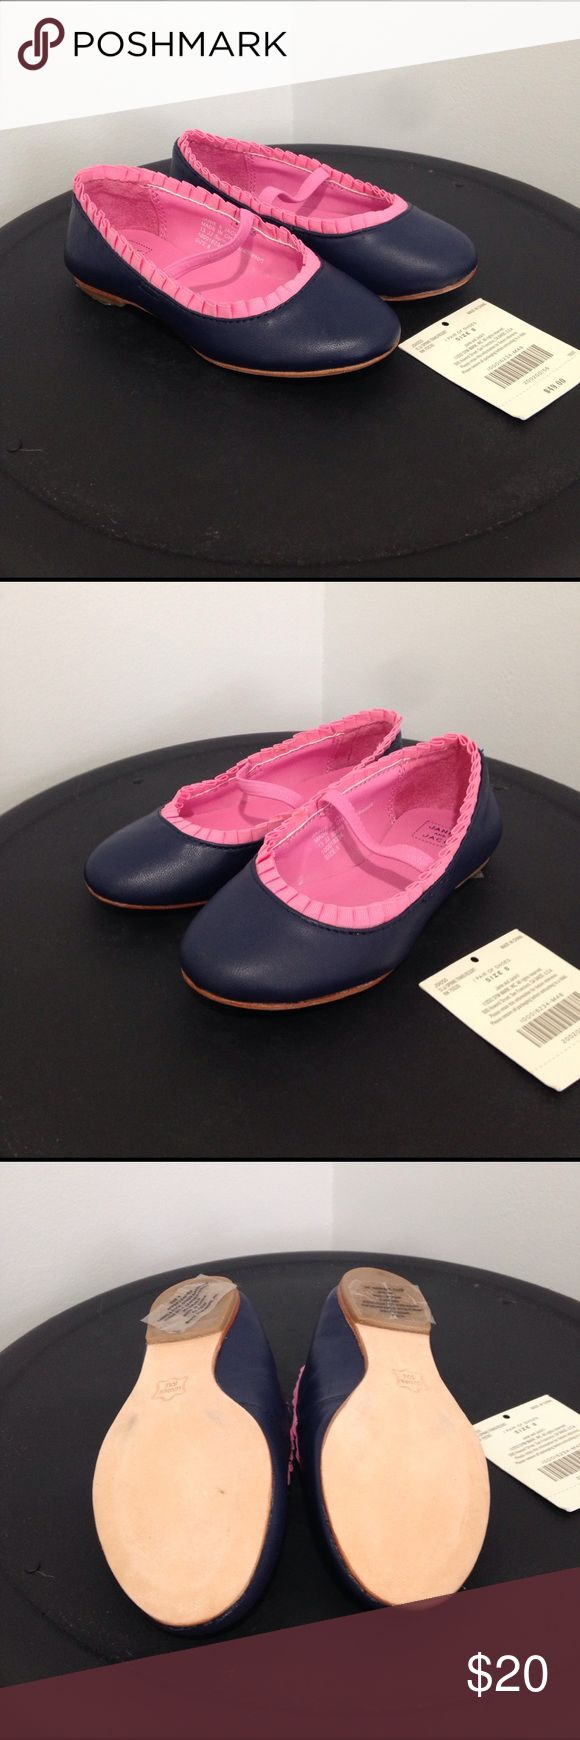 Janie and Jack navy and pink ruffle dress shoes 8 NWT Janie and Jack navy blue and pink dress shoes. Still have the stickers on the bottom! These shoes are adorable! Janie and Jack Shoes Dress Shoes